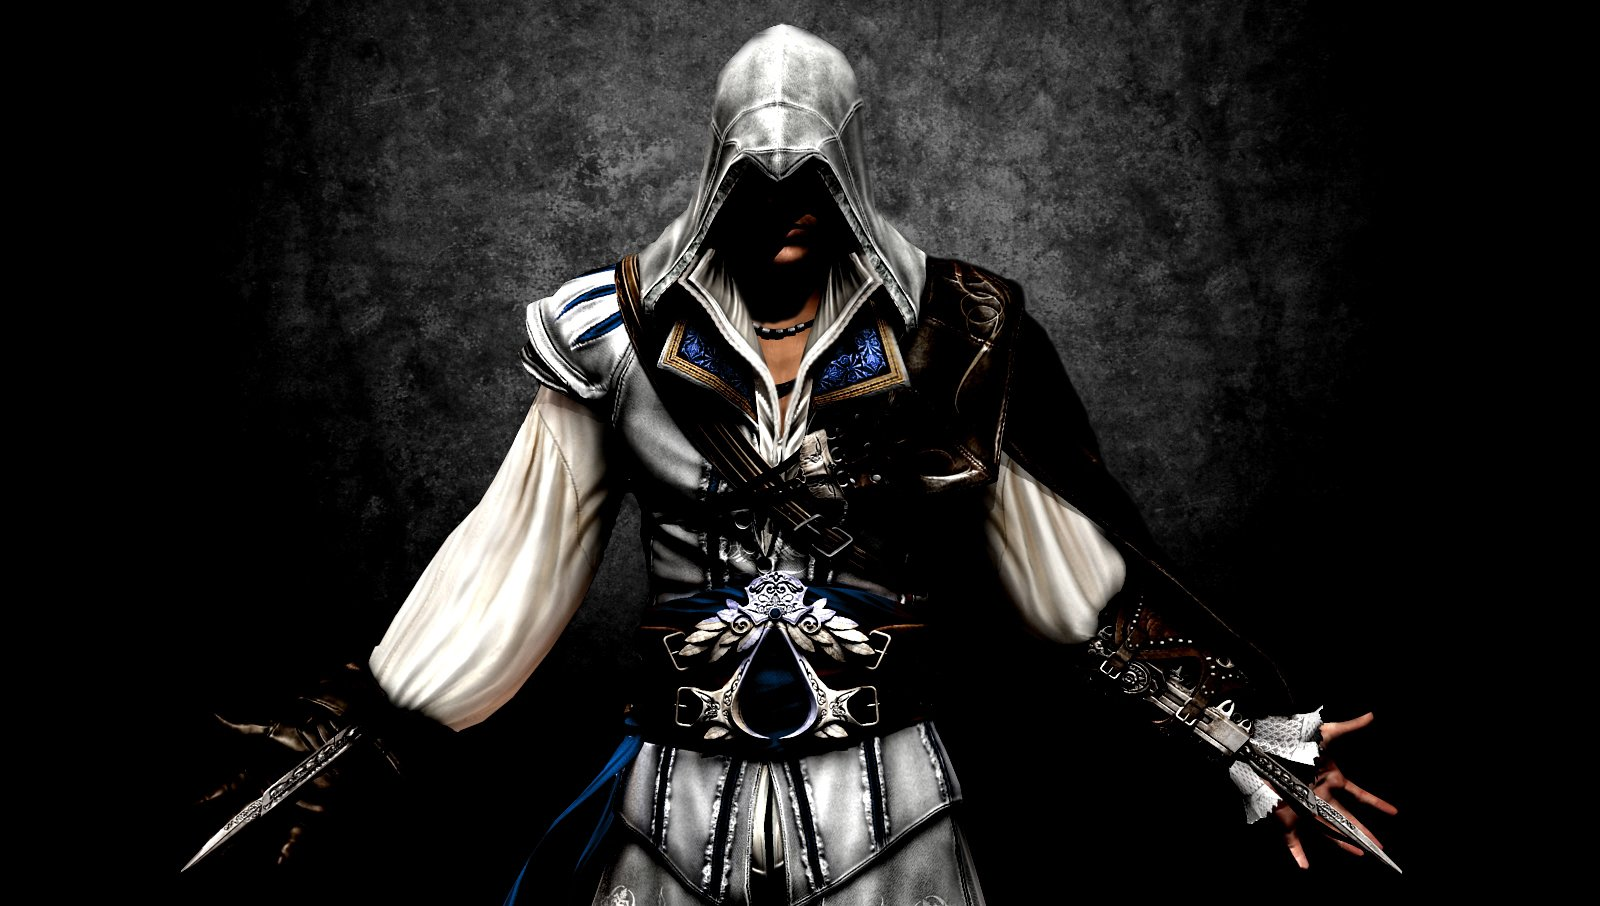 ezio assassins creed ii - photo #41